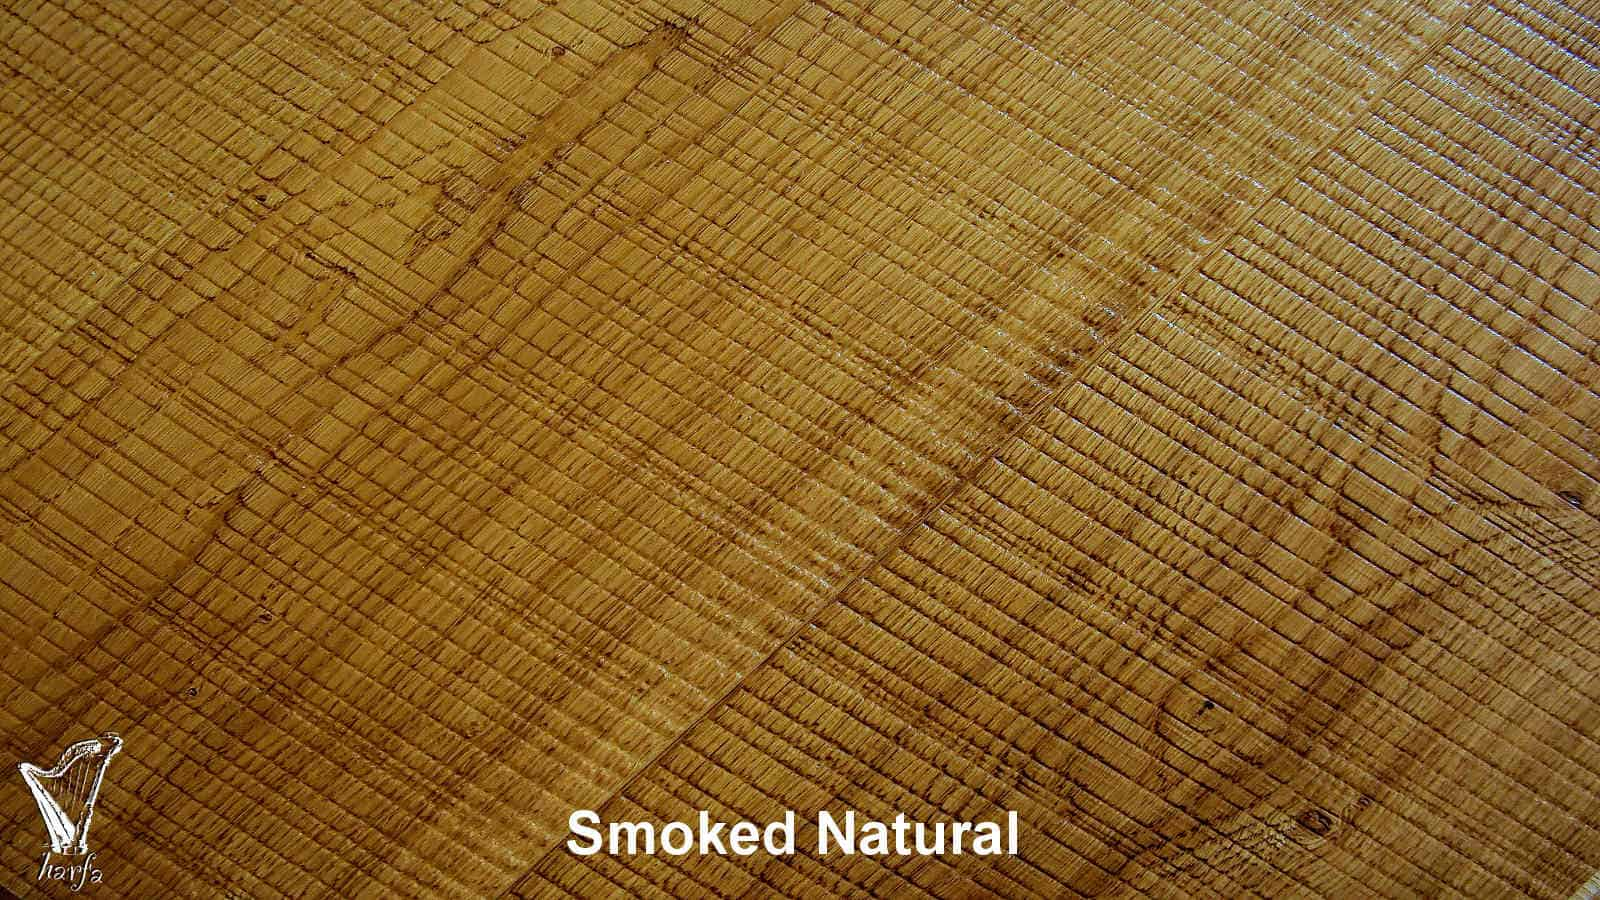 Kolekcja: ESCO Harfa, Kolor: Smoked Natural